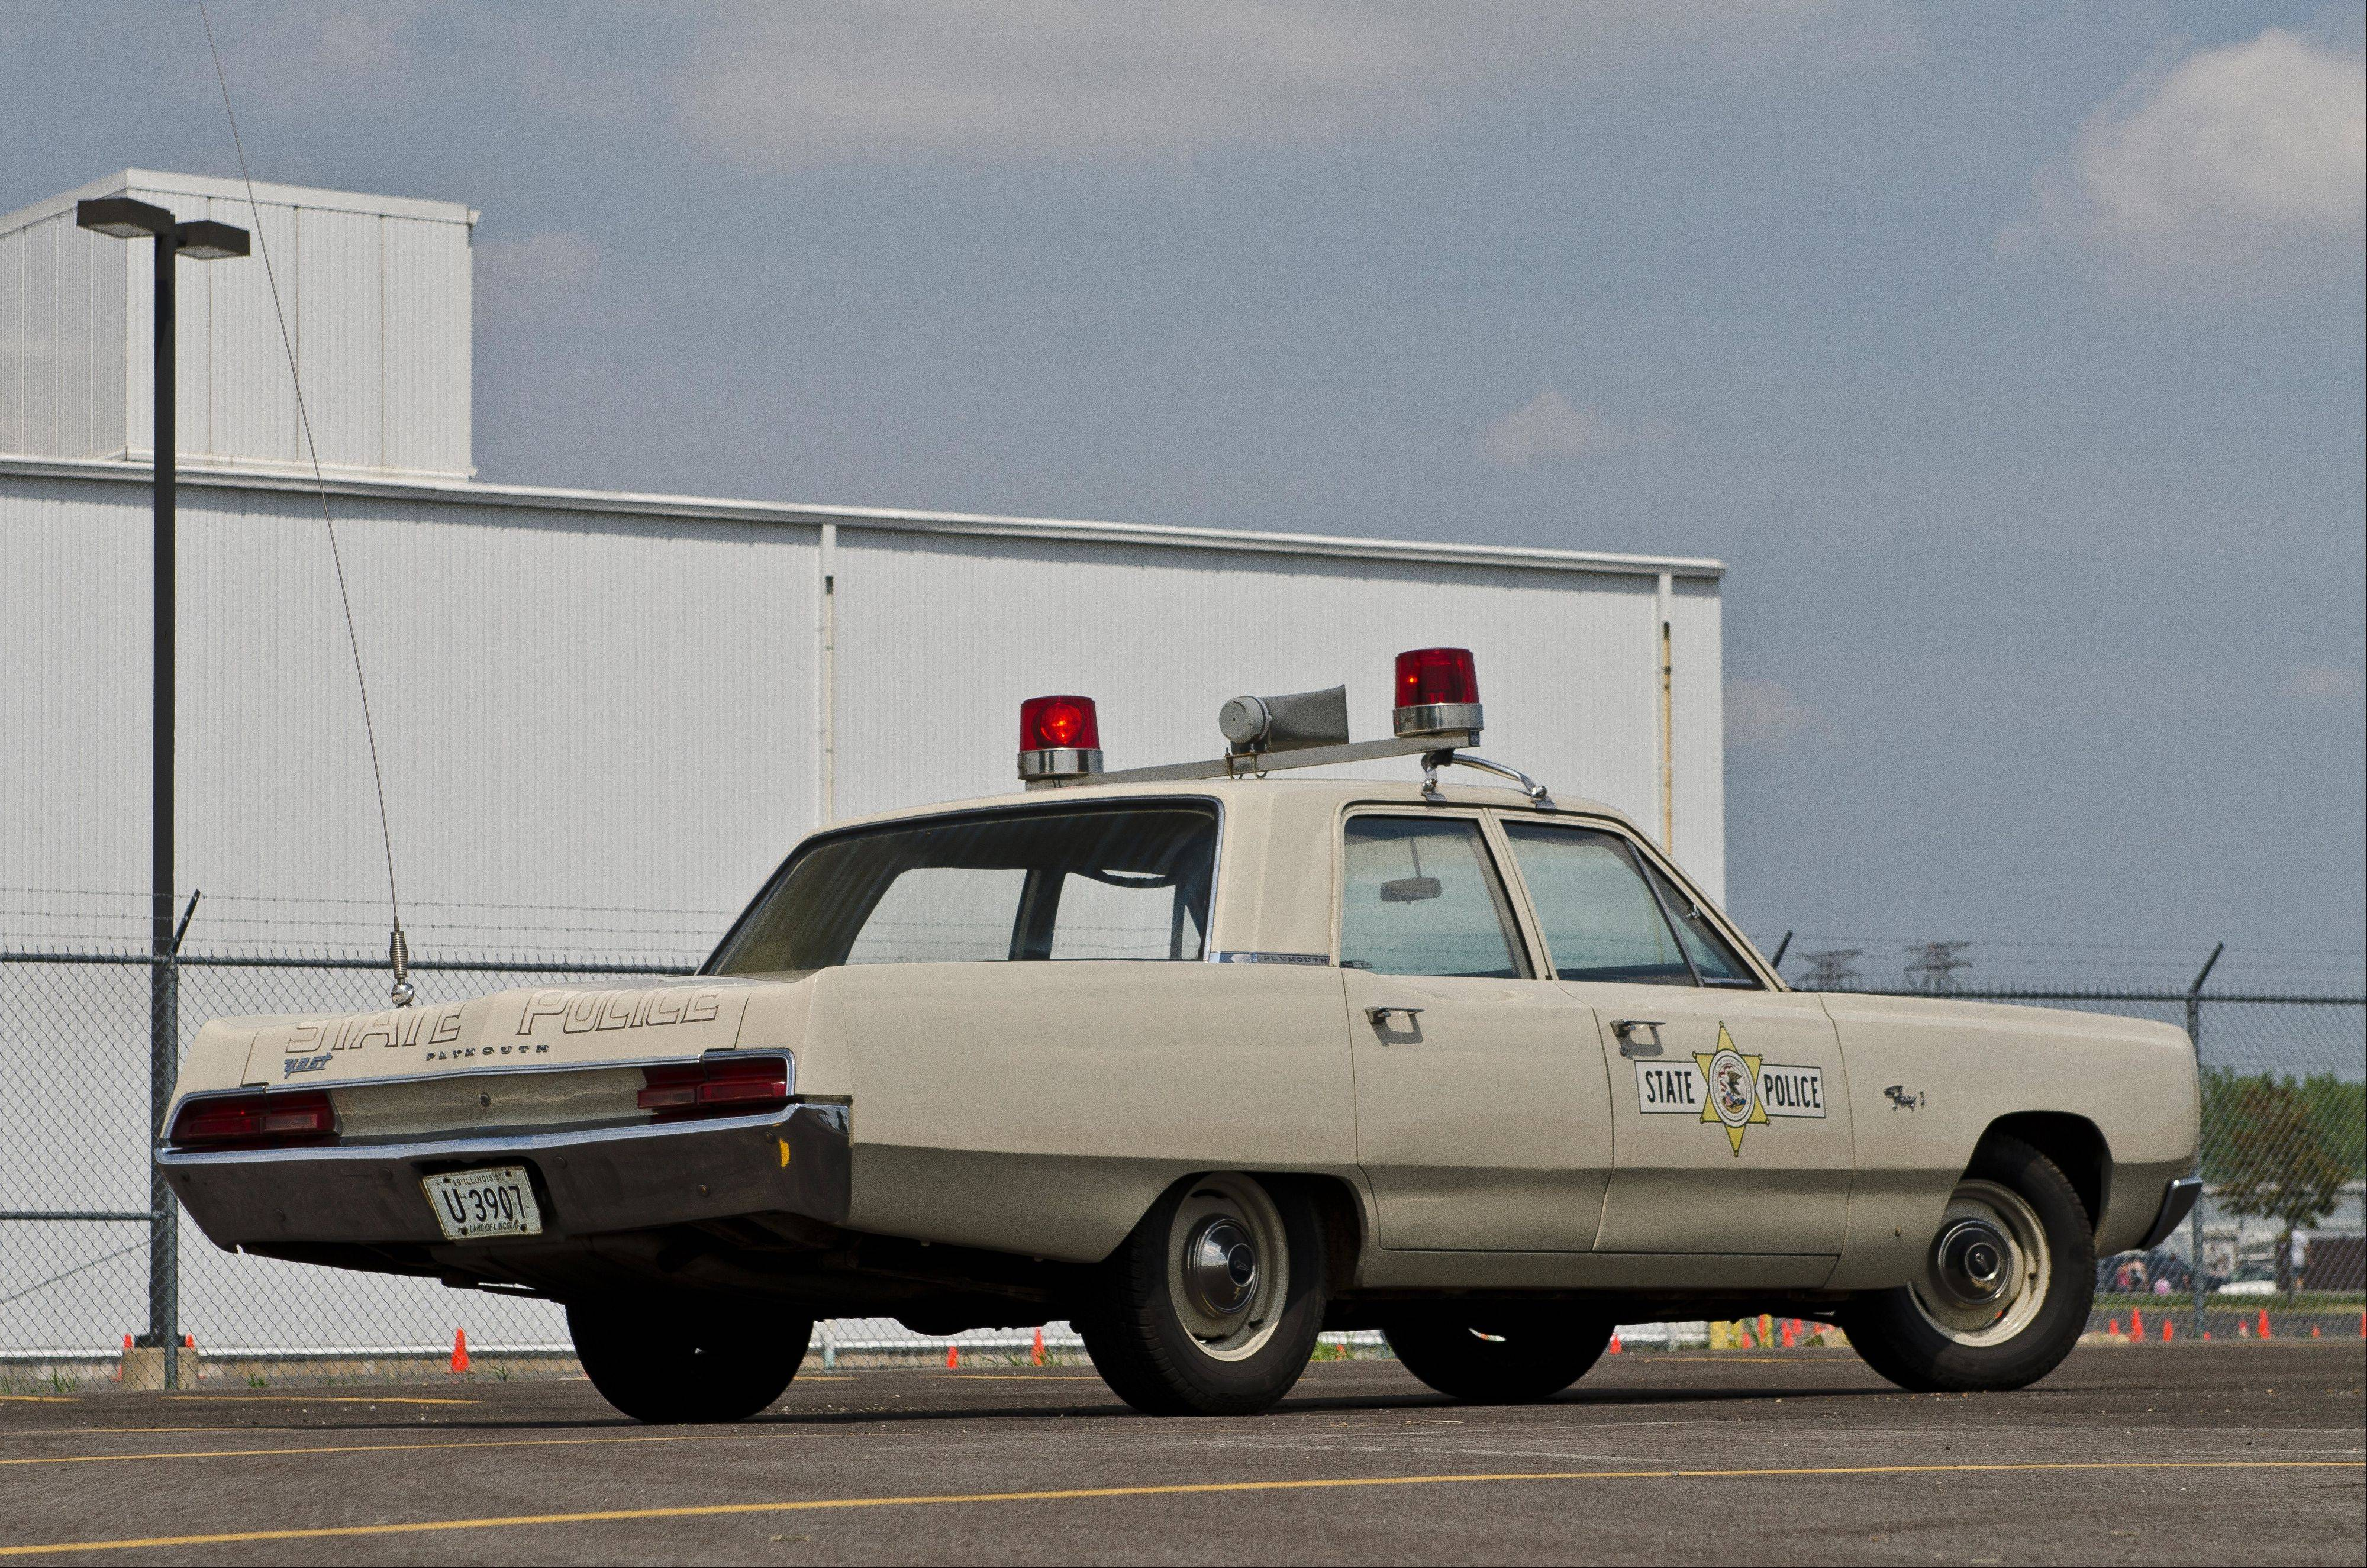 Hahn located vintage equipment, such as a light bar and siren, for his 1967 Illinois State Police tribute squad car.